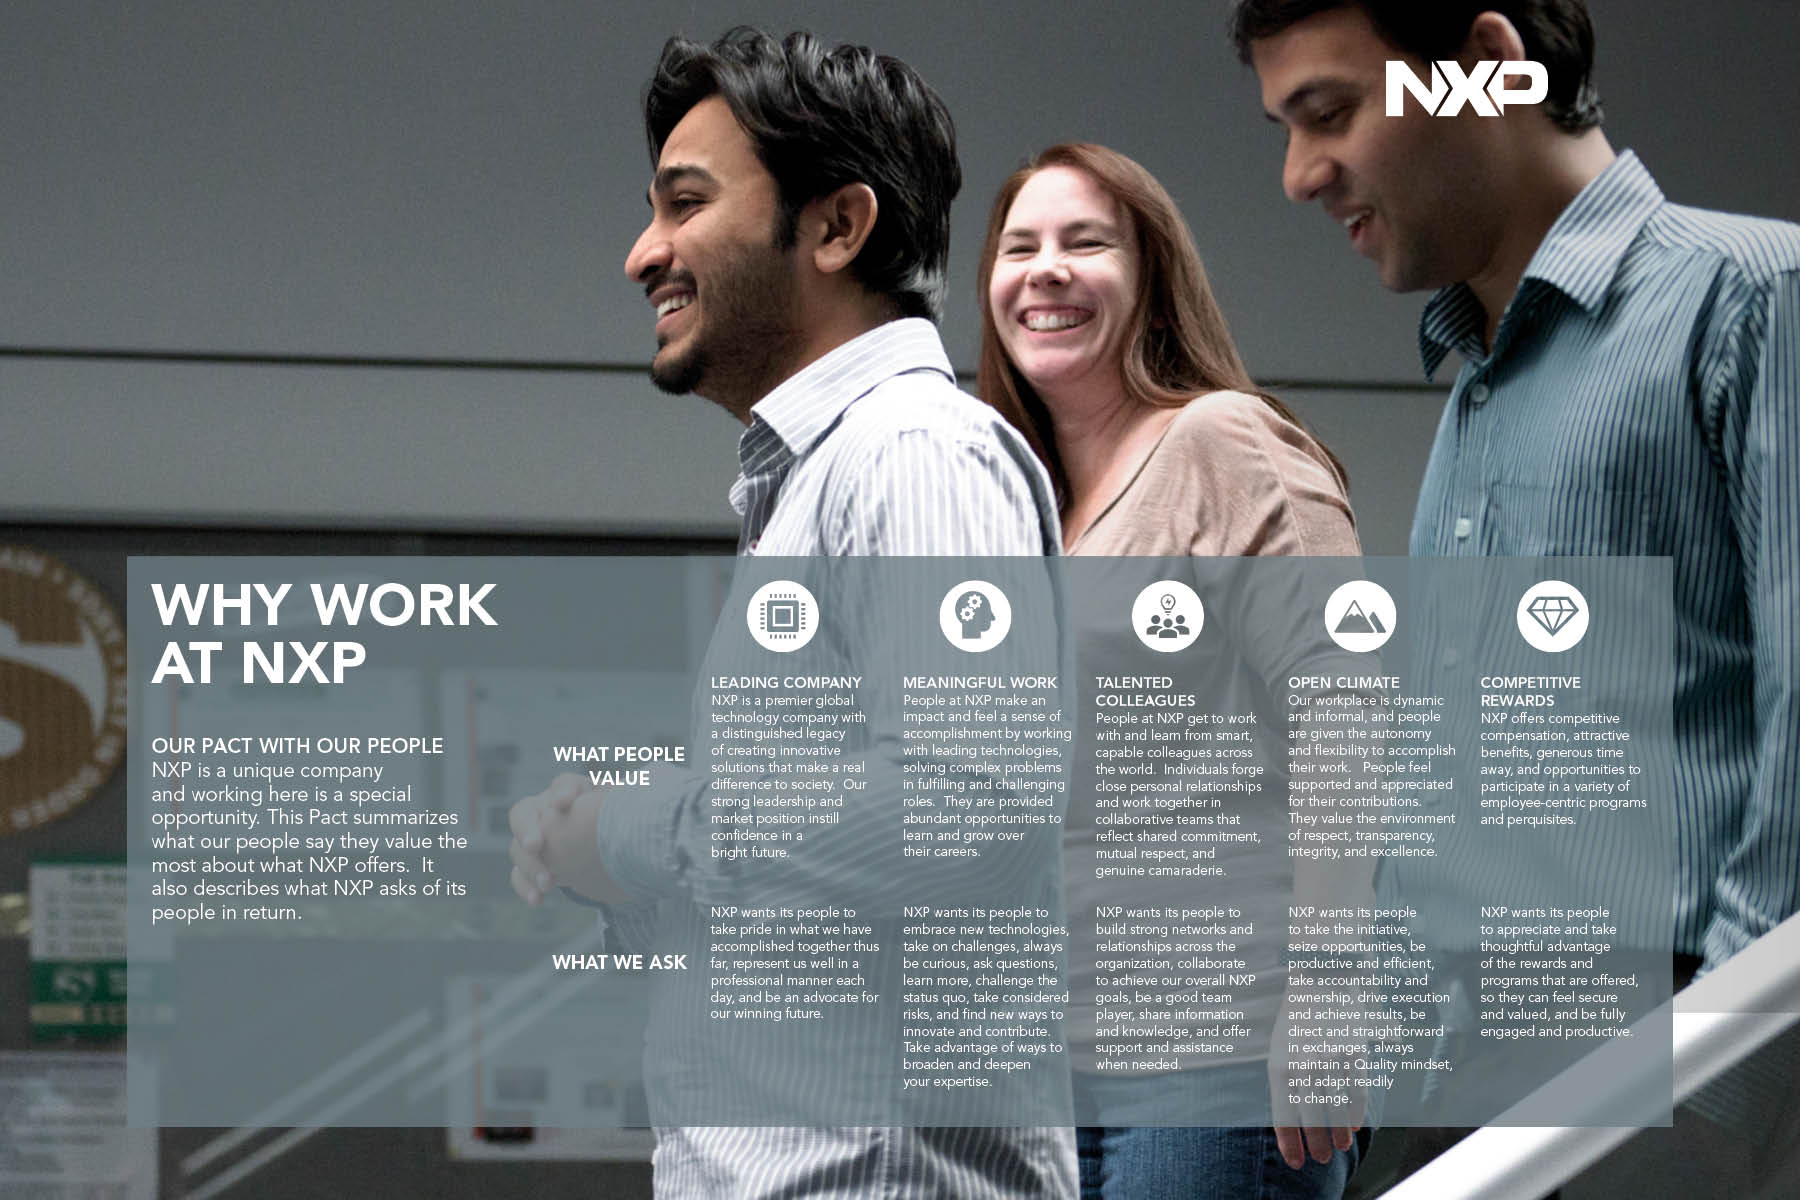 Centigrade - NXP Why Work at NXP